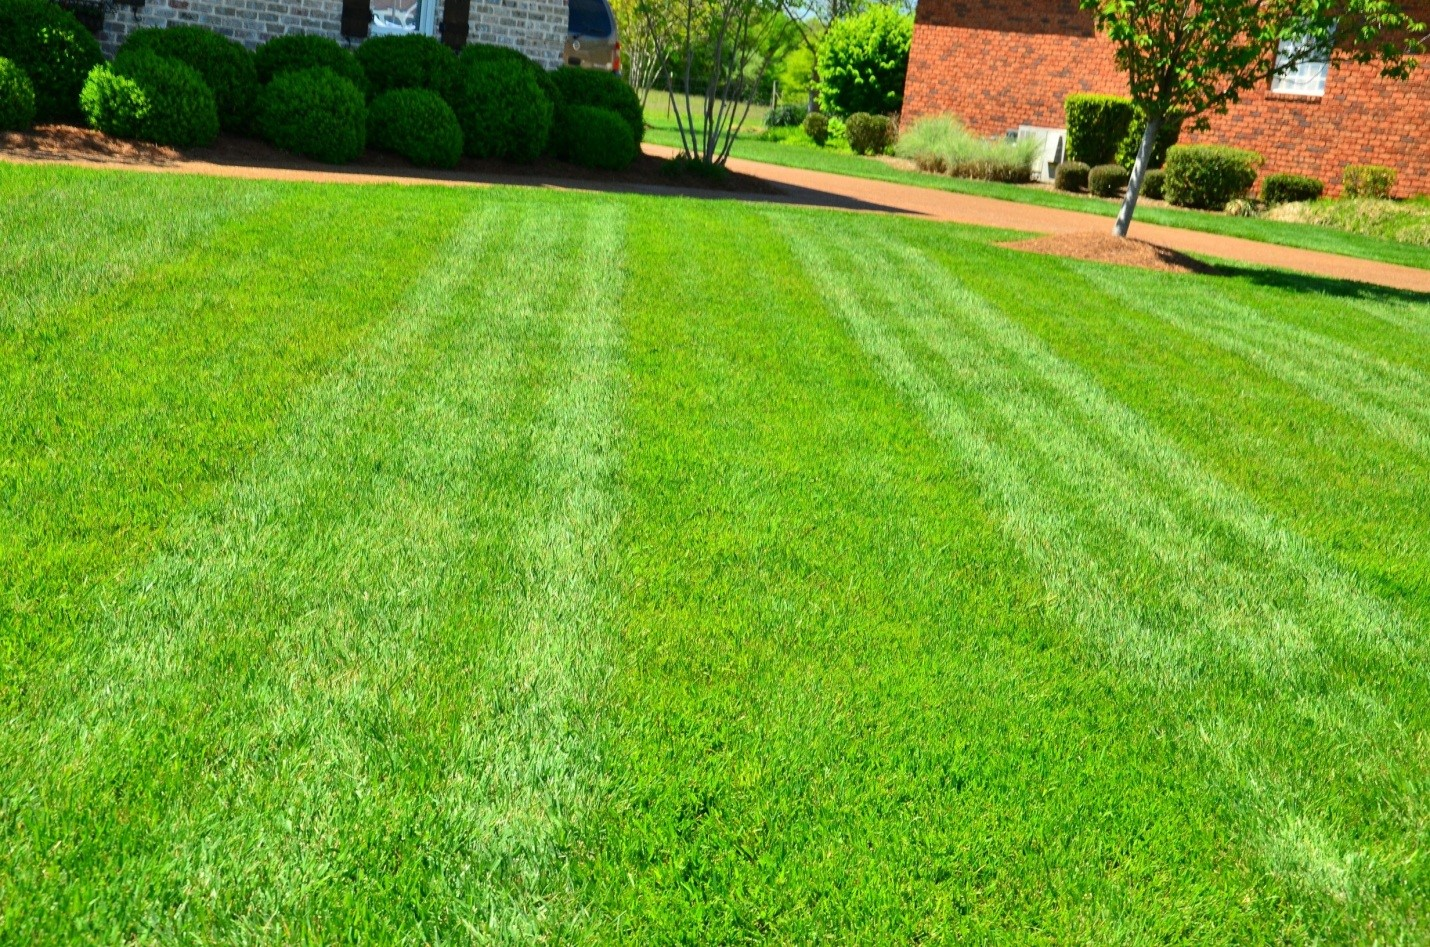 useful-tips-to-seed-your-lawn-5